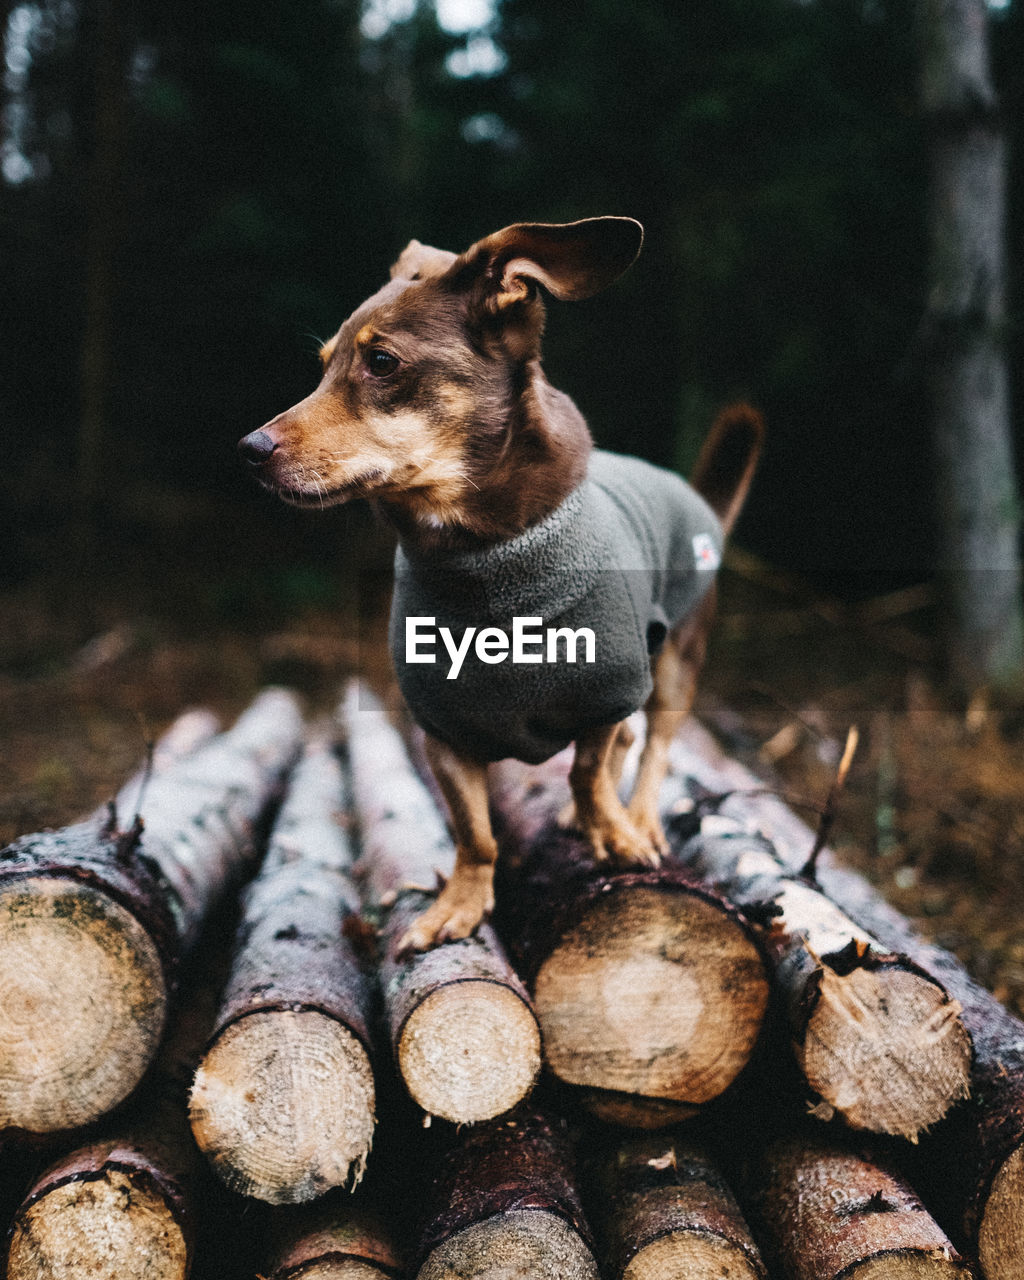 Dog looking away while standing on logs in forest